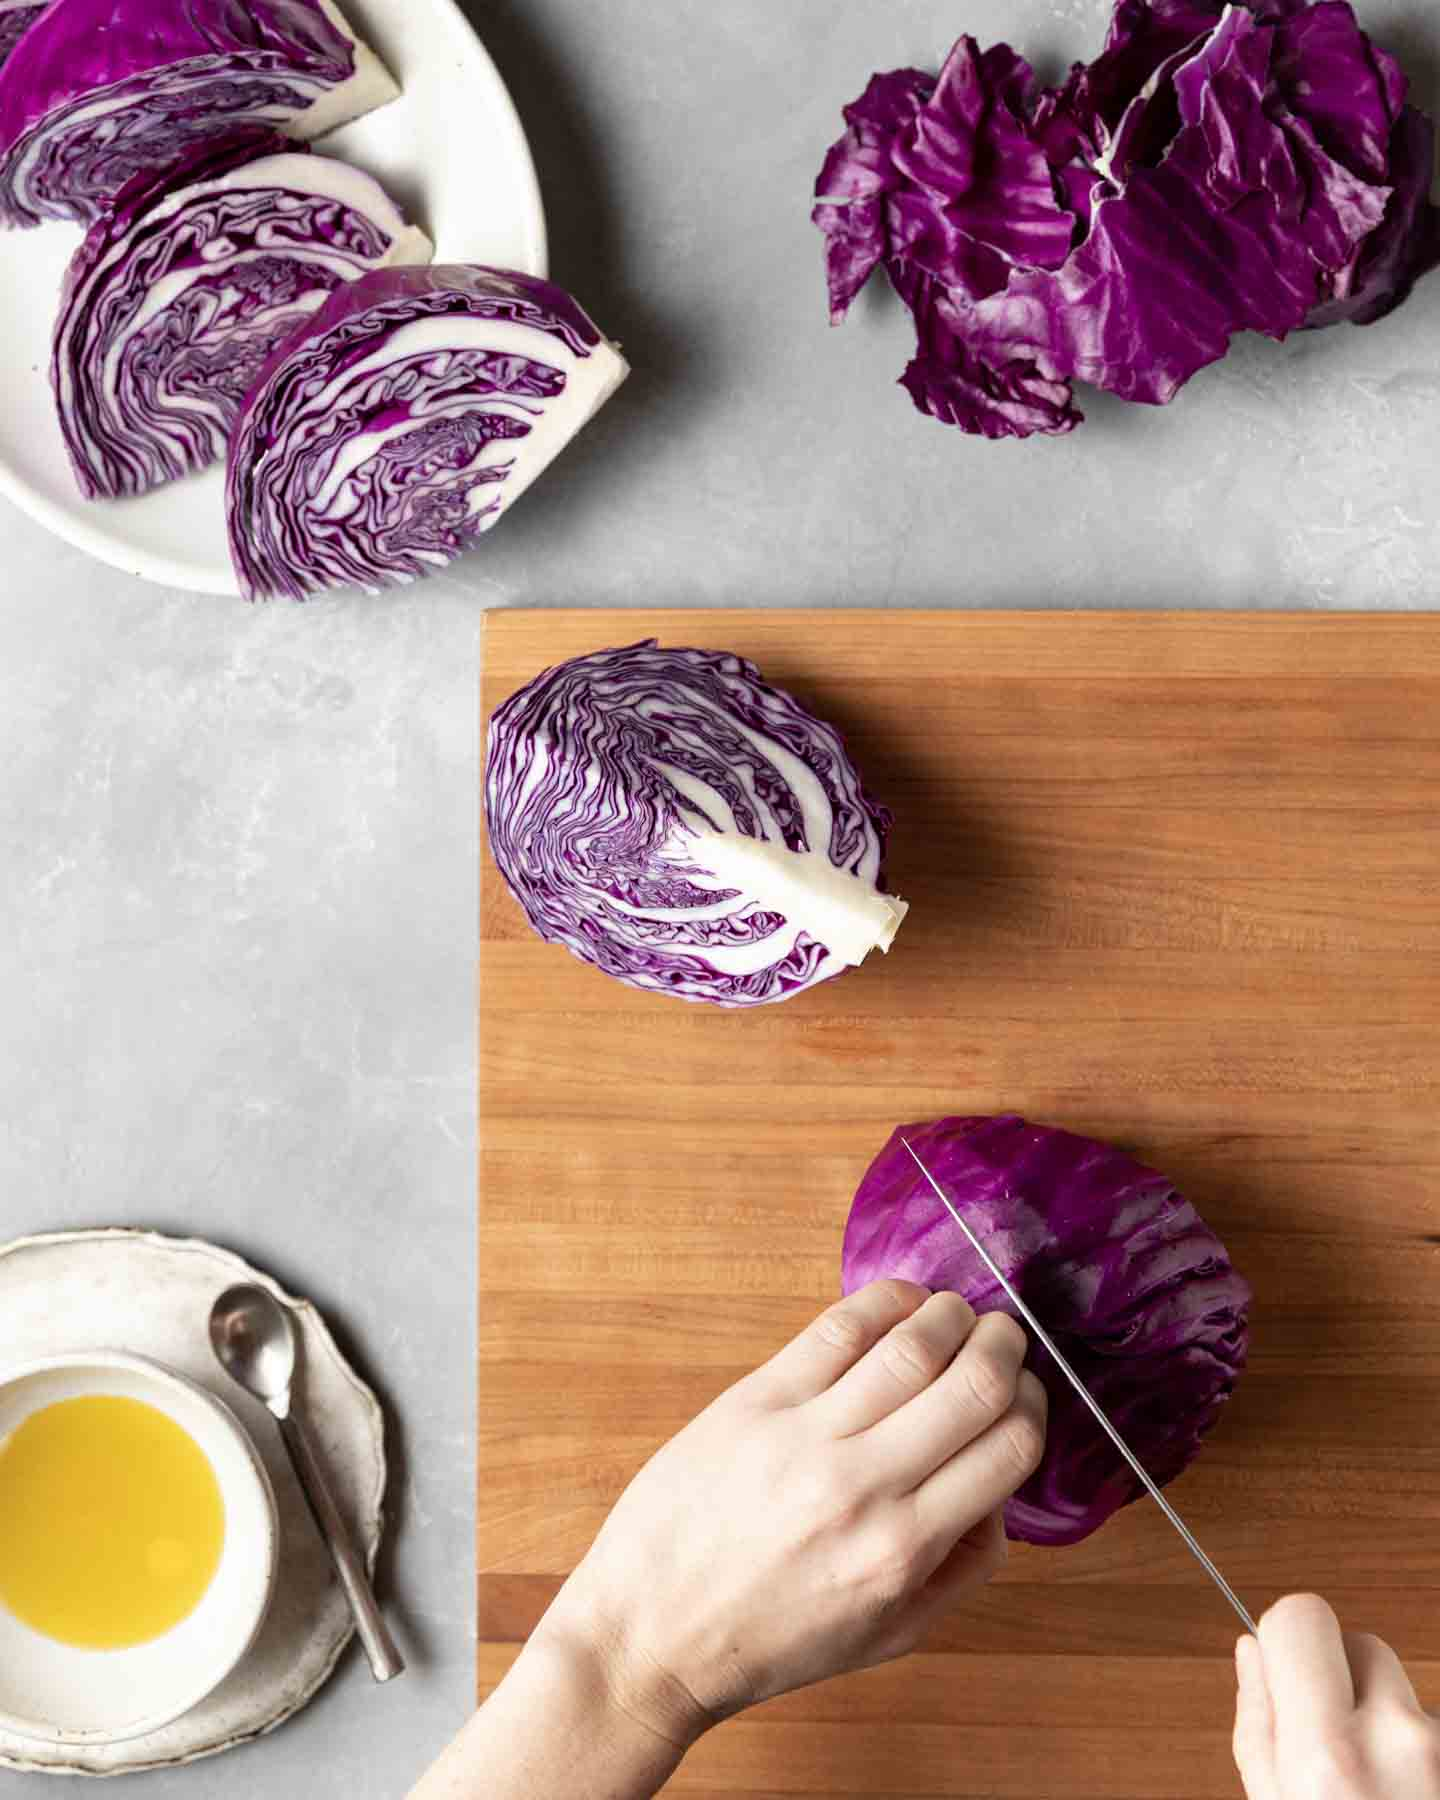 In preparation for cooking, a whole head of cabbage is cut into 8 equal wedges.